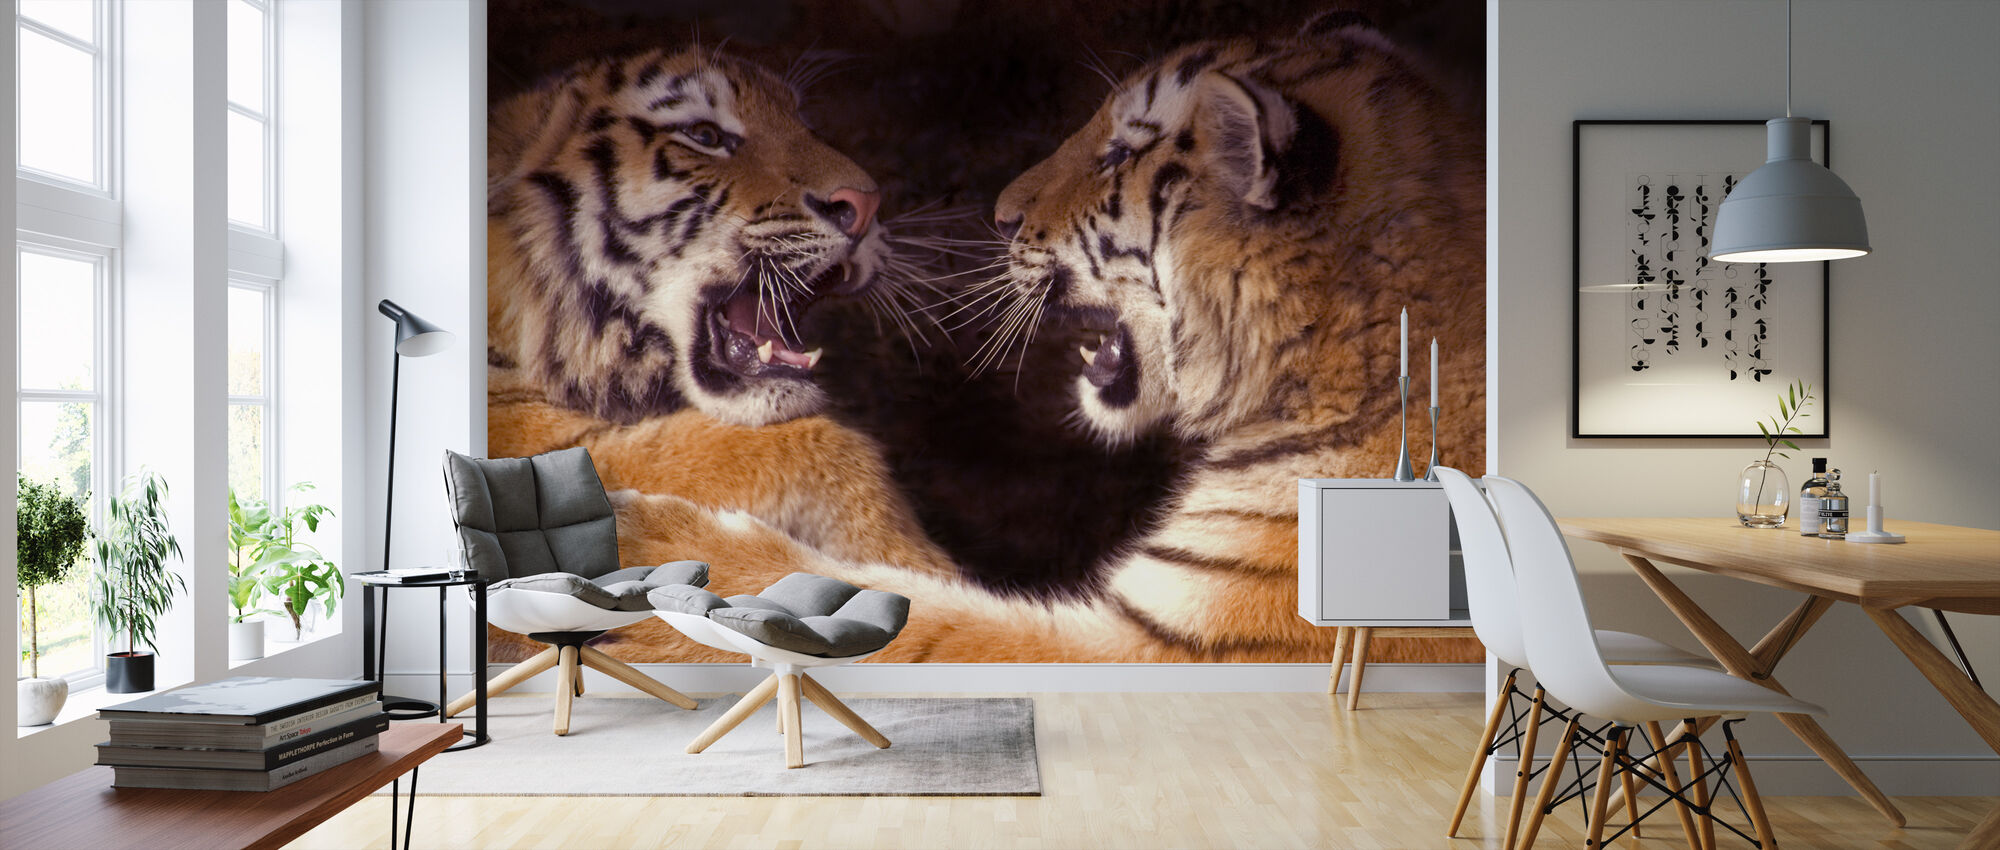 Play Fighting Cubs - Wallpaper - Living Room